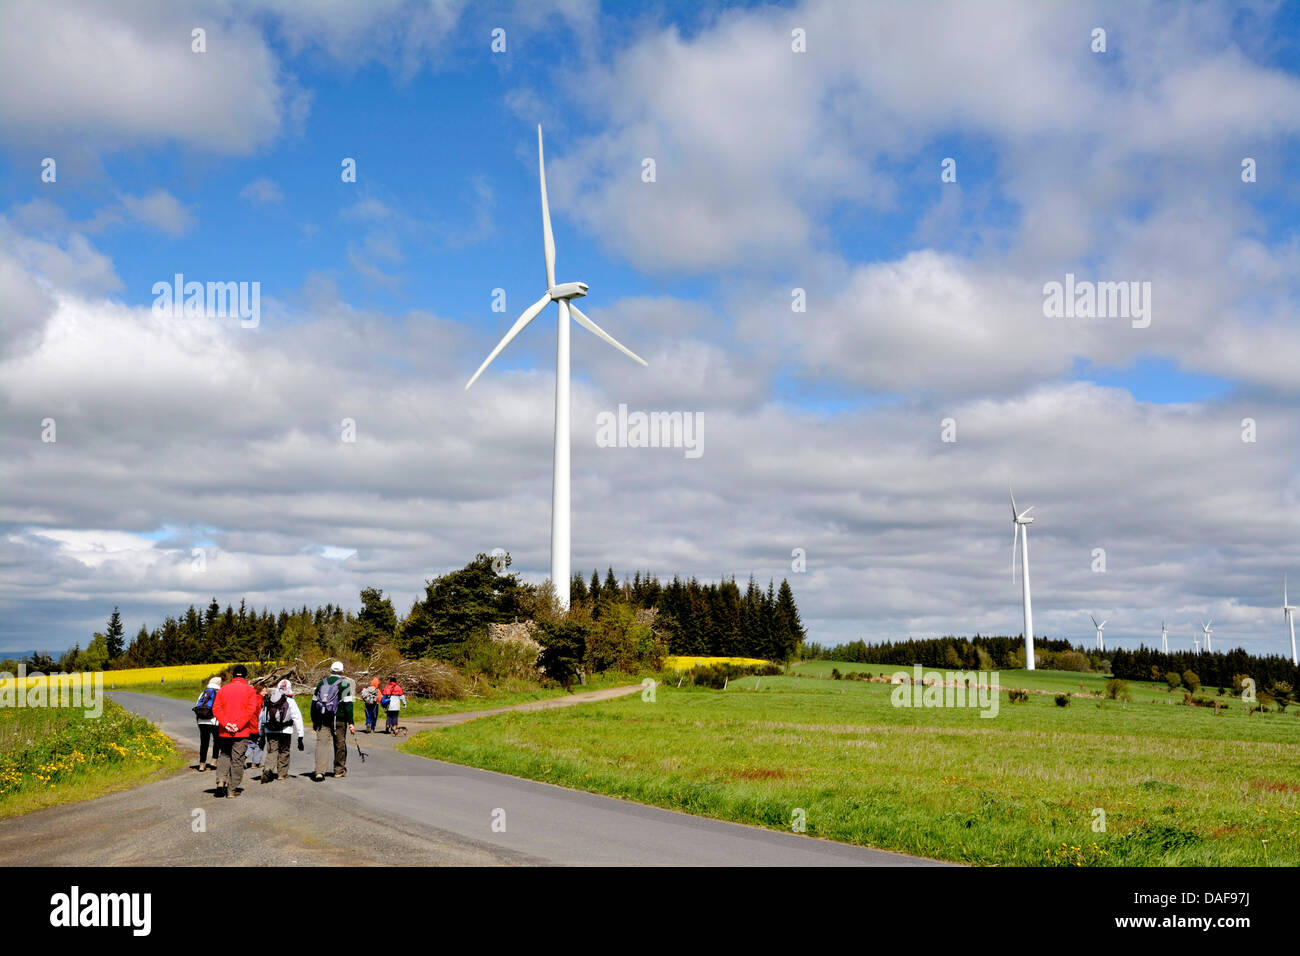 Hikers near a rural wind farm - Stock Image